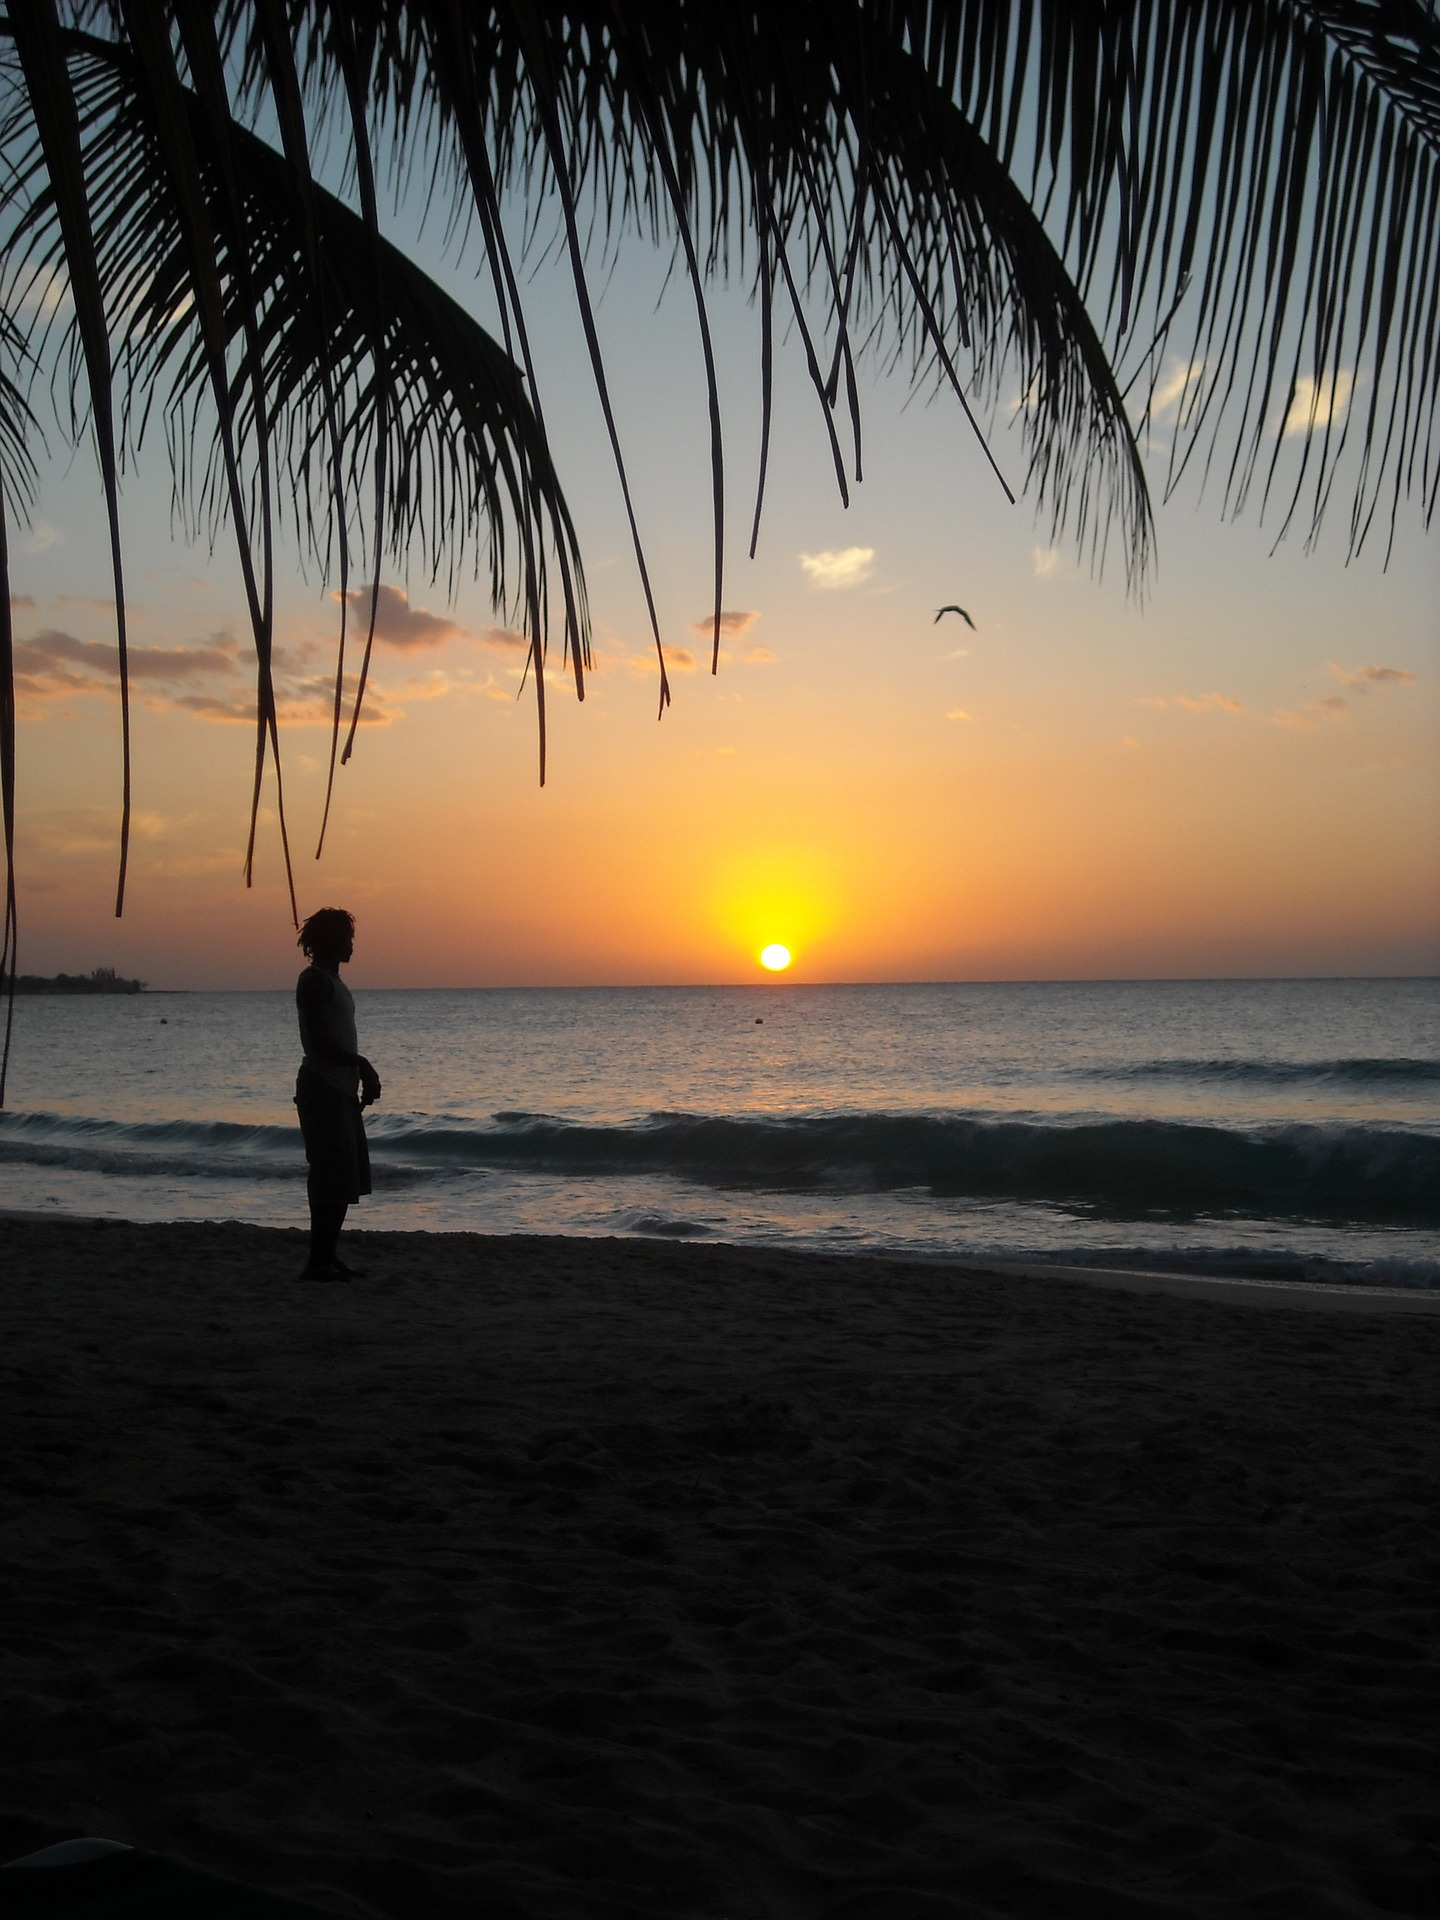 jamaica sunset beach